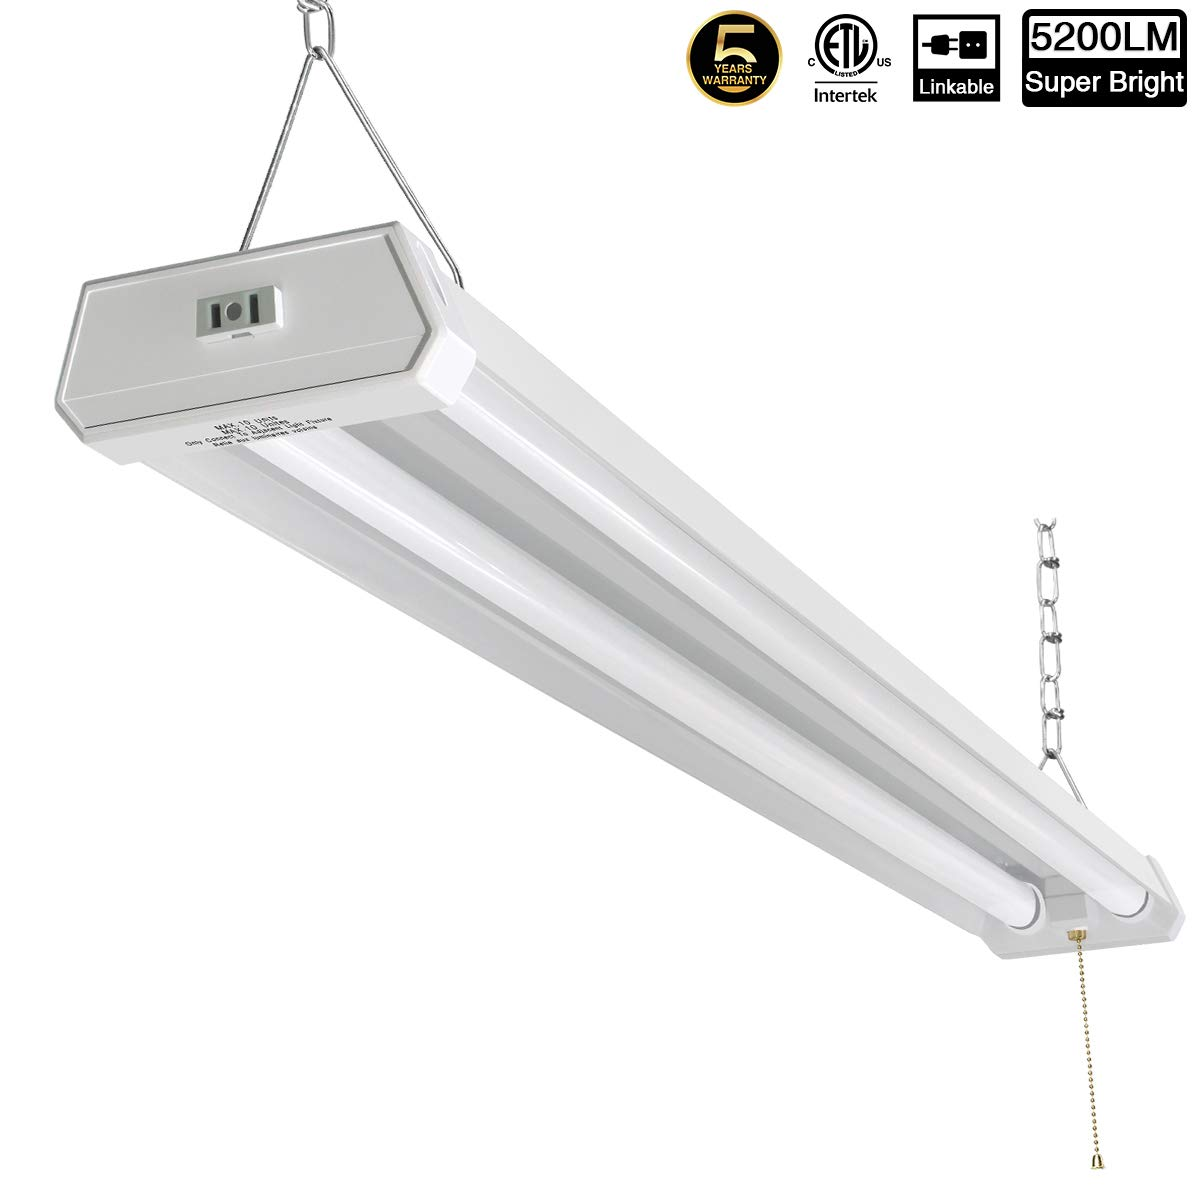 Linkable led shop light for garage 42w 5200lm 4ft 6000 6500k daylight white with pull chain on off cetlus listed 5 year warranty 6000k 1pk